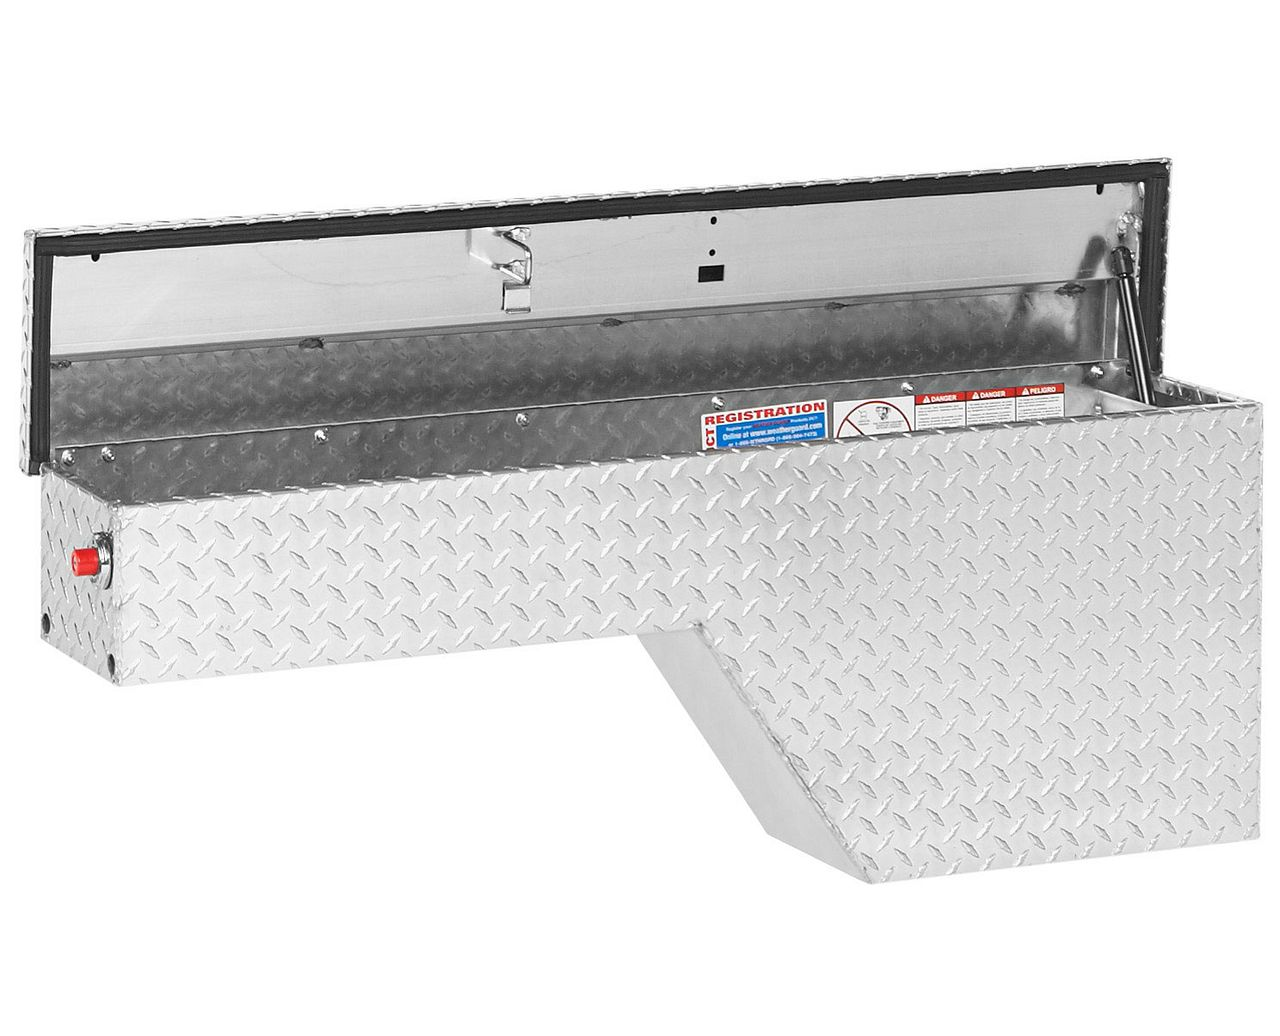 Weather Guard 170-0-01 Pork Chop Box, Aluminum, Driver Side